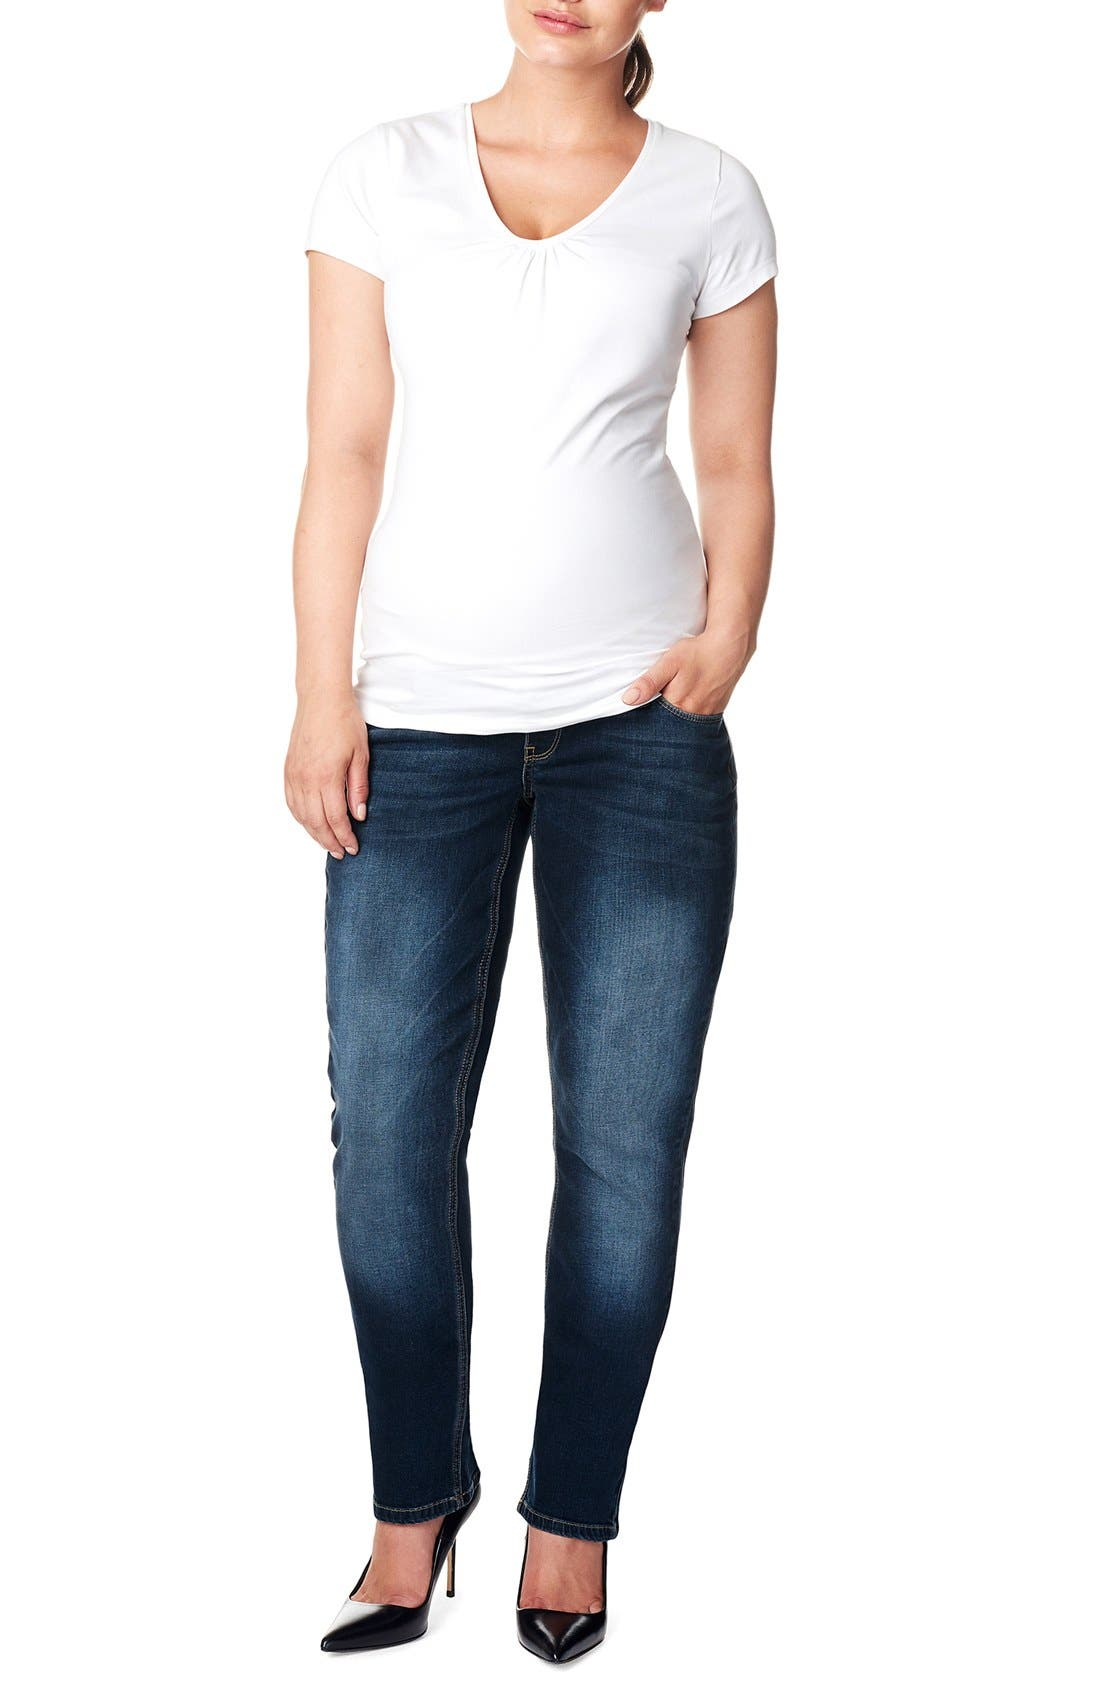 Alternate Image 1 Selected - Noppies 'Mena Comfort' Over the Belly Straight Leg Maternity Jeans (Plus Size)